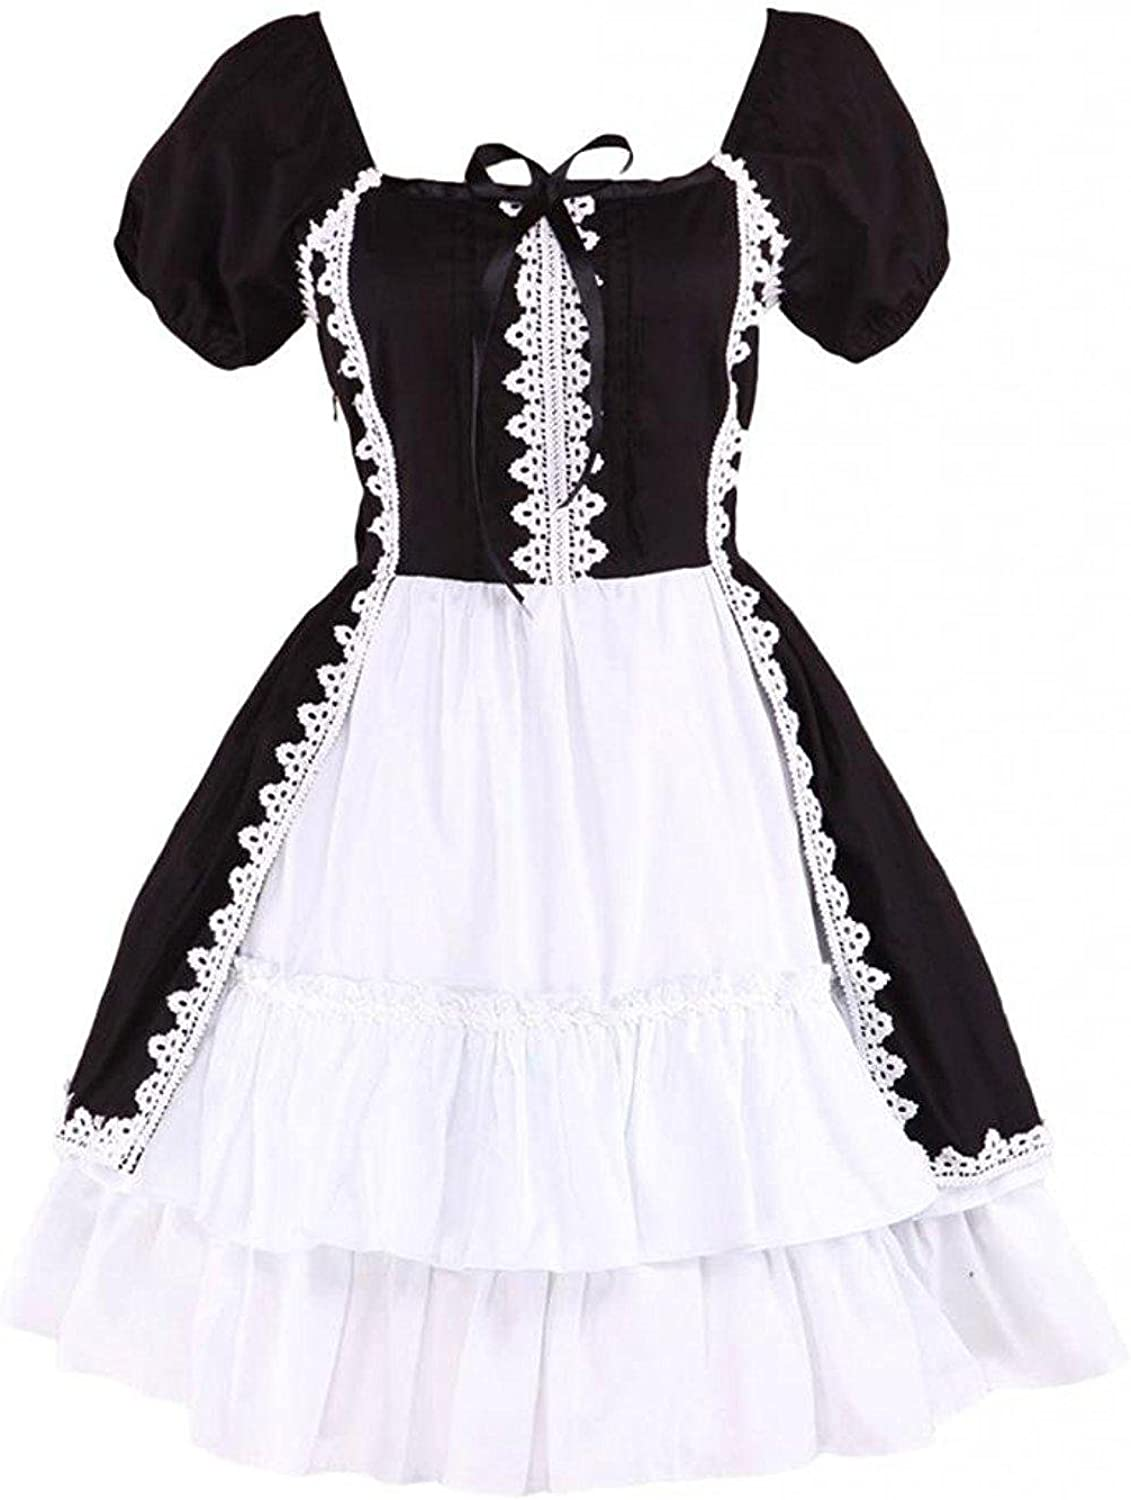 Ainclu Womens Classic Cotton Black and White Short Sleeves Gothic Lolita Dress